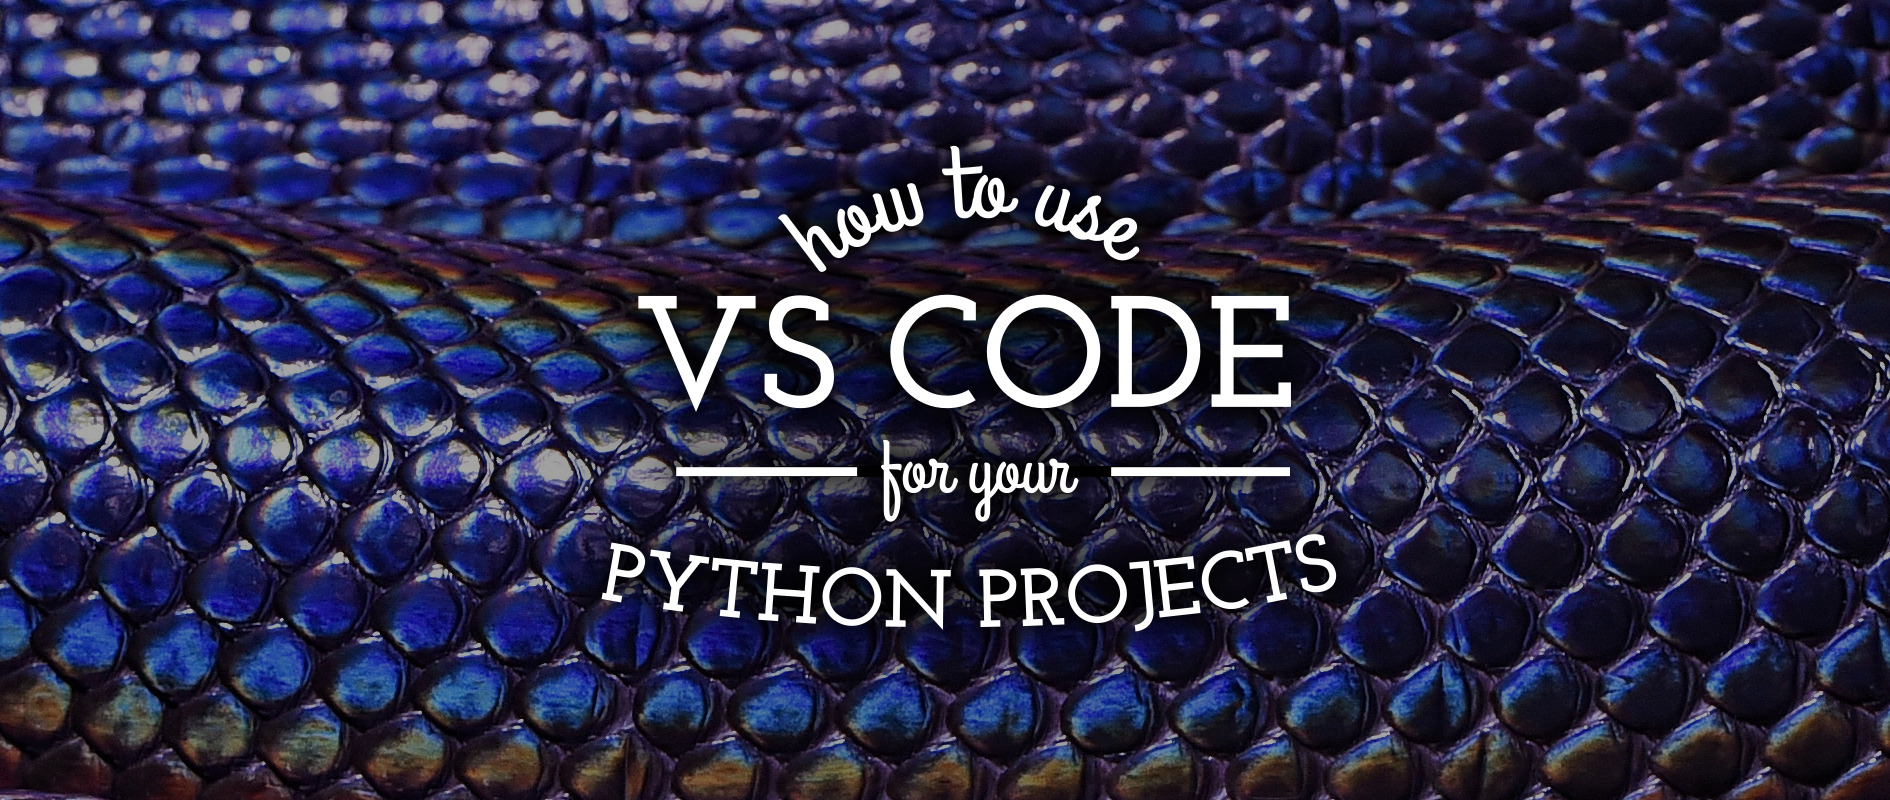 Vs Code Select Line Shortcut How To Use Vs Code For Your Python Projects Fedora Magazine